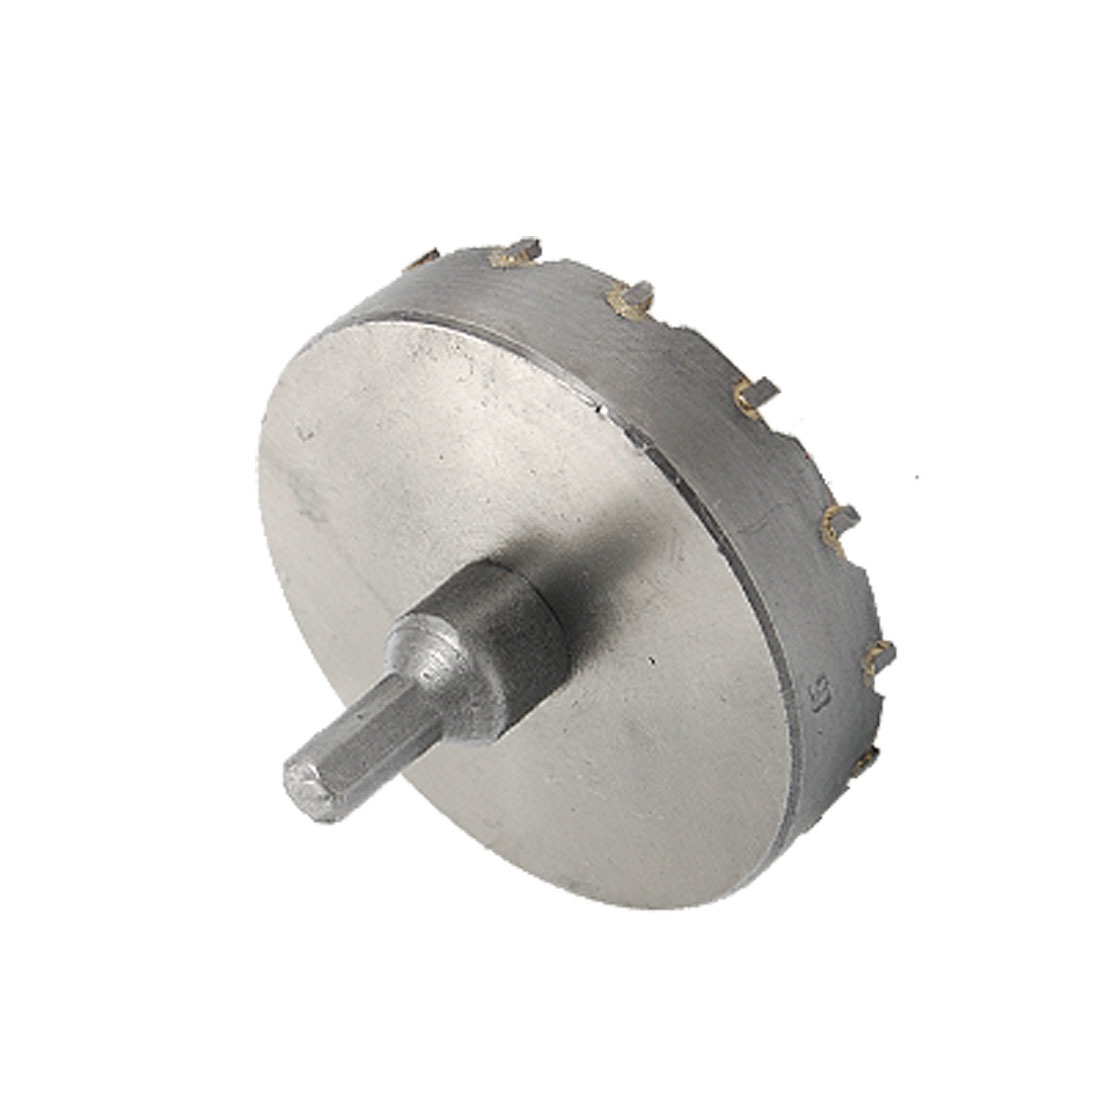 Twist Drill Bit 80mm Hole Saw Alloy Cutting Tool